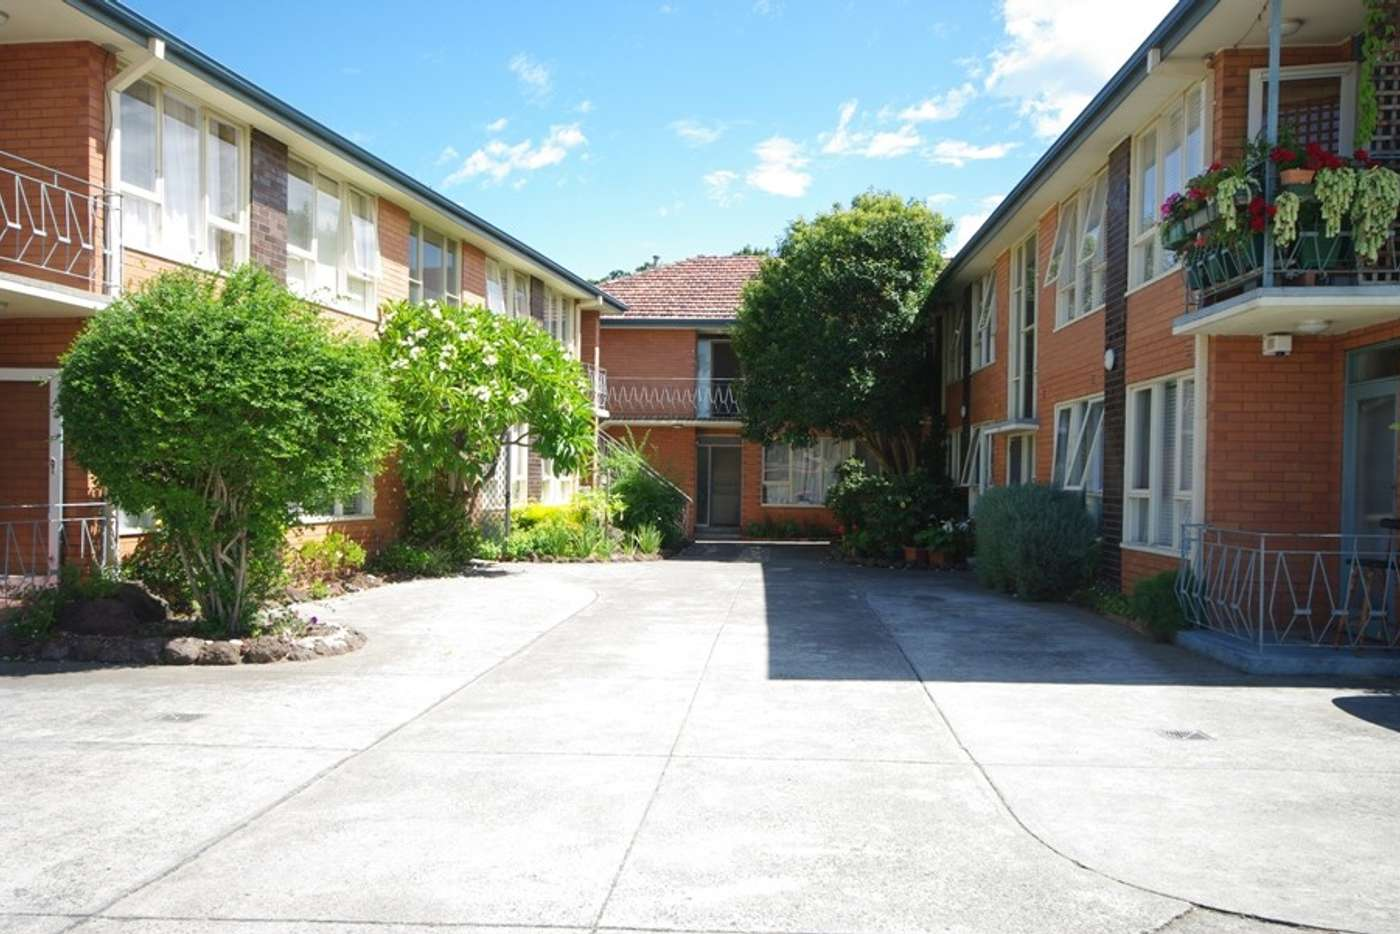 Main view of Homely apartment listing, 7/85 Mitchell Street, Bentleigh VIC 3204